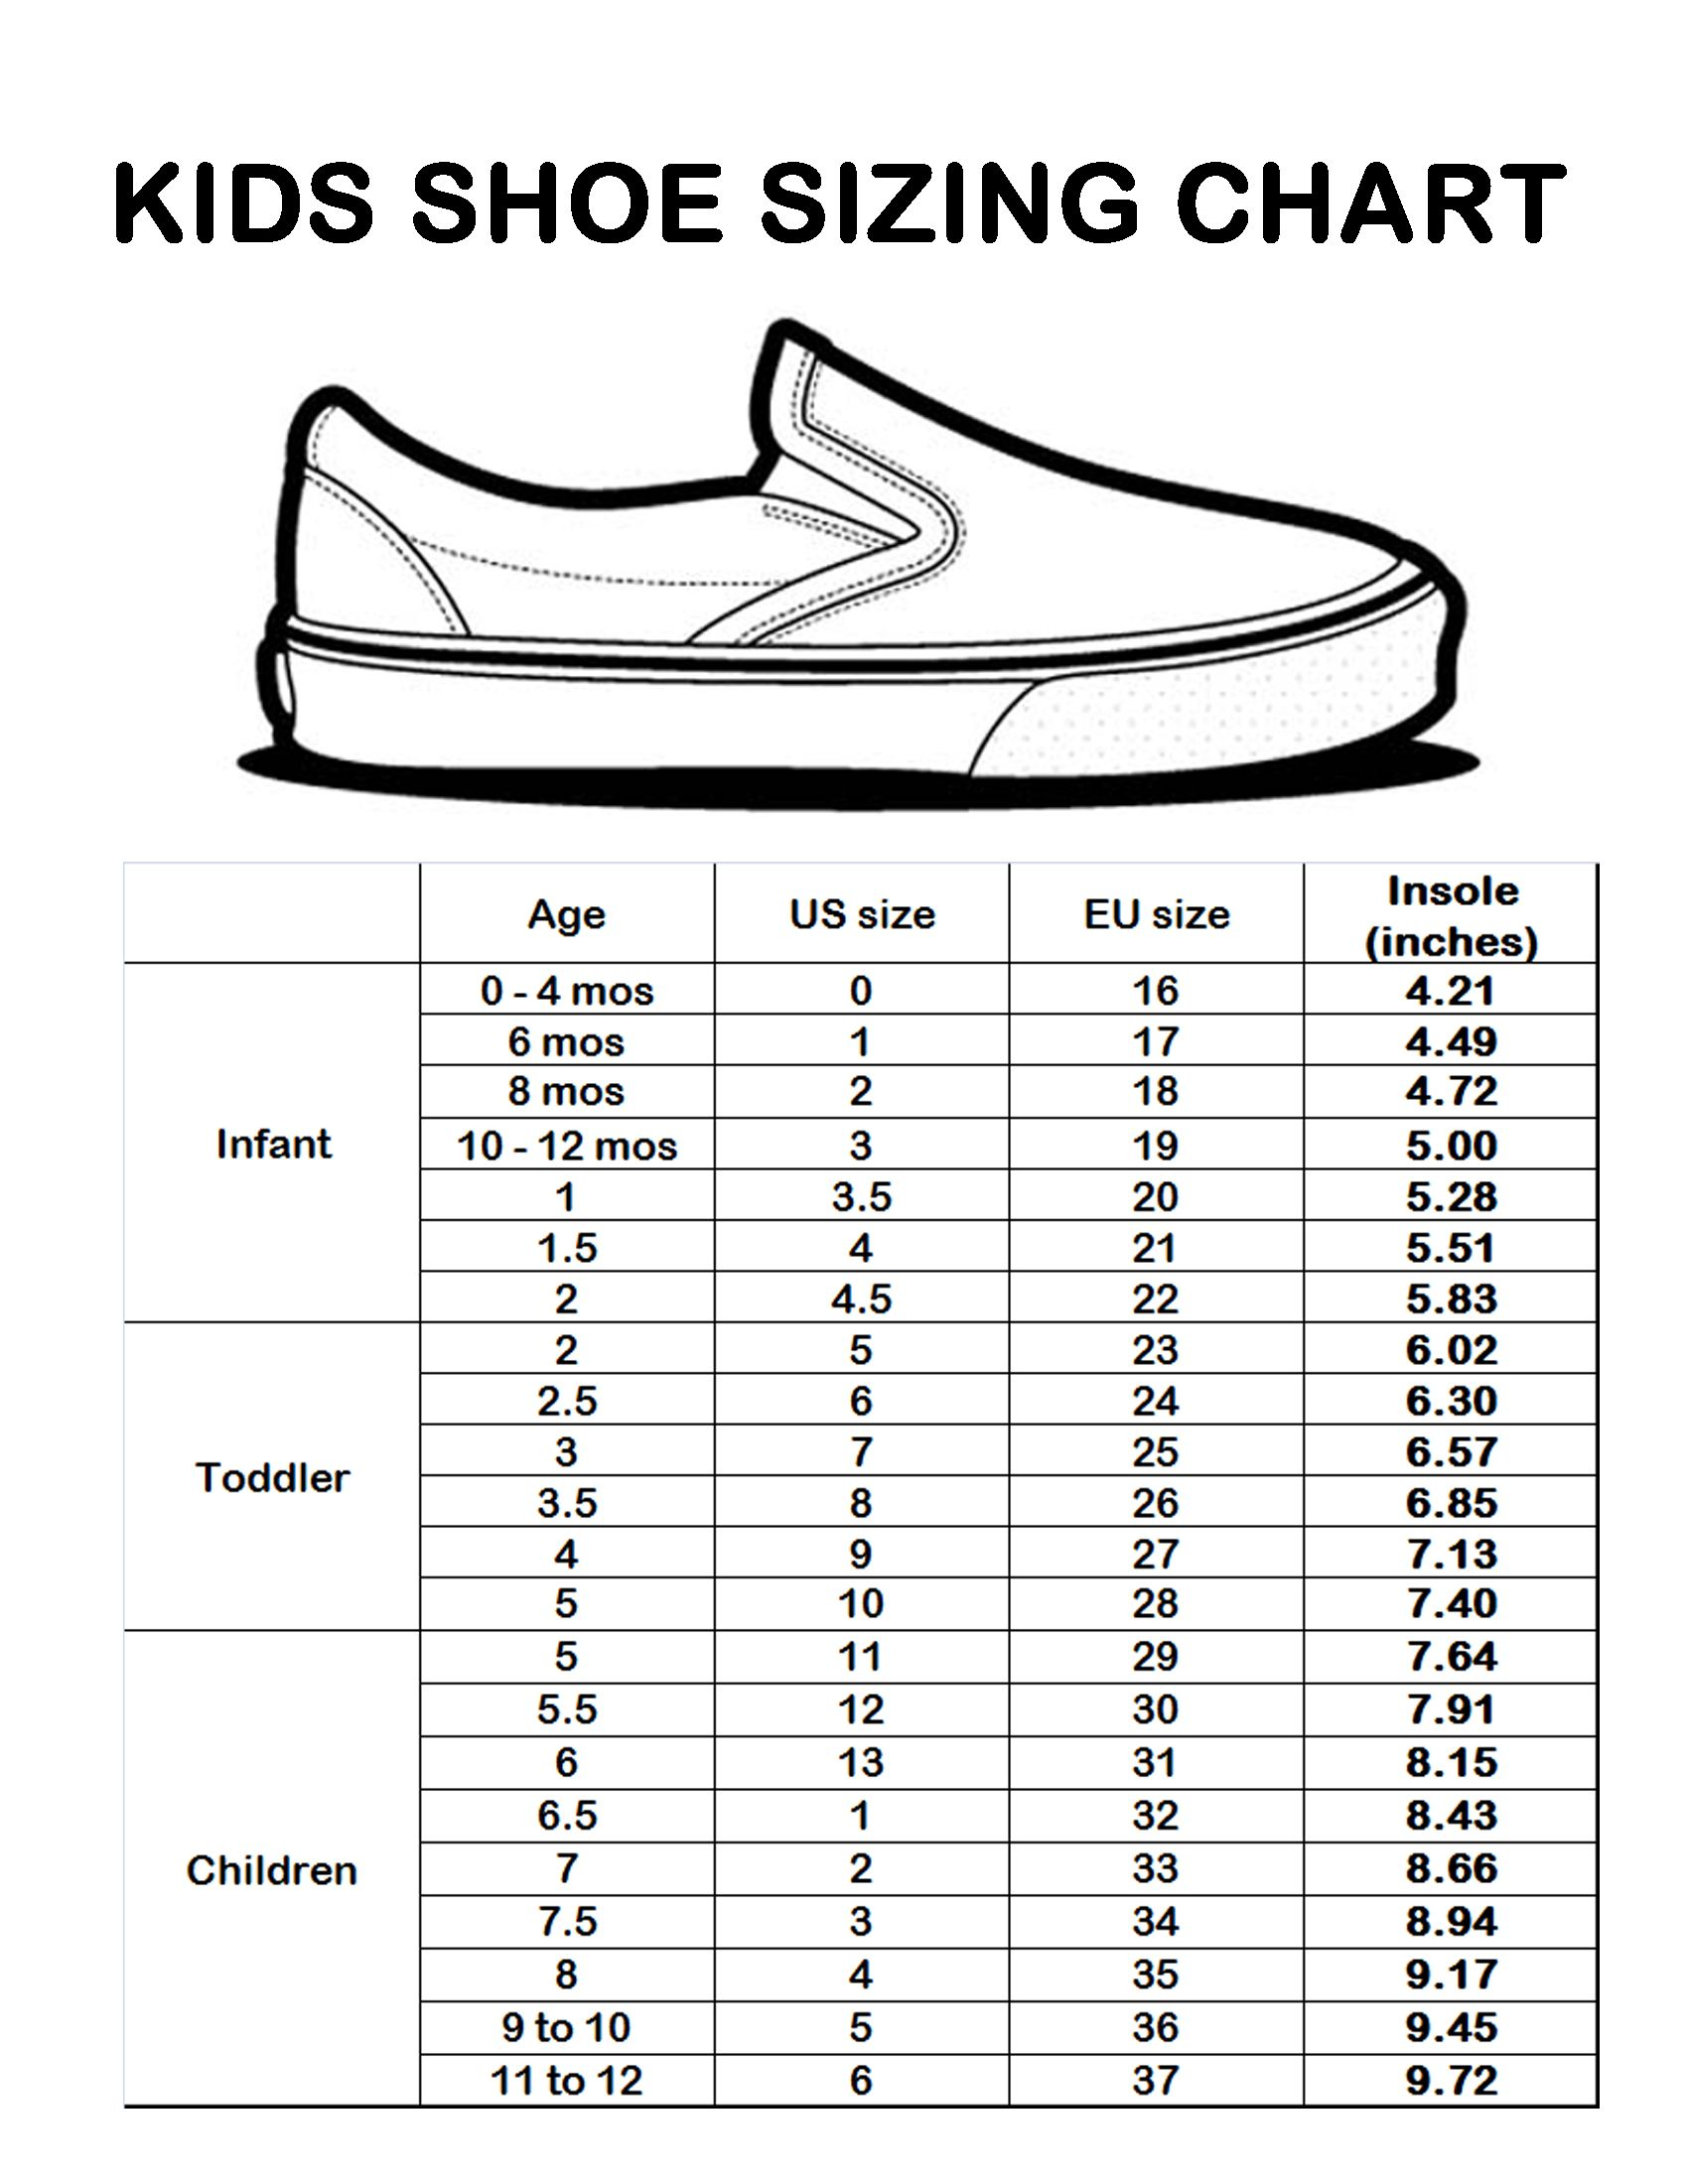 Another shoe size chart for the kids. Although the age won